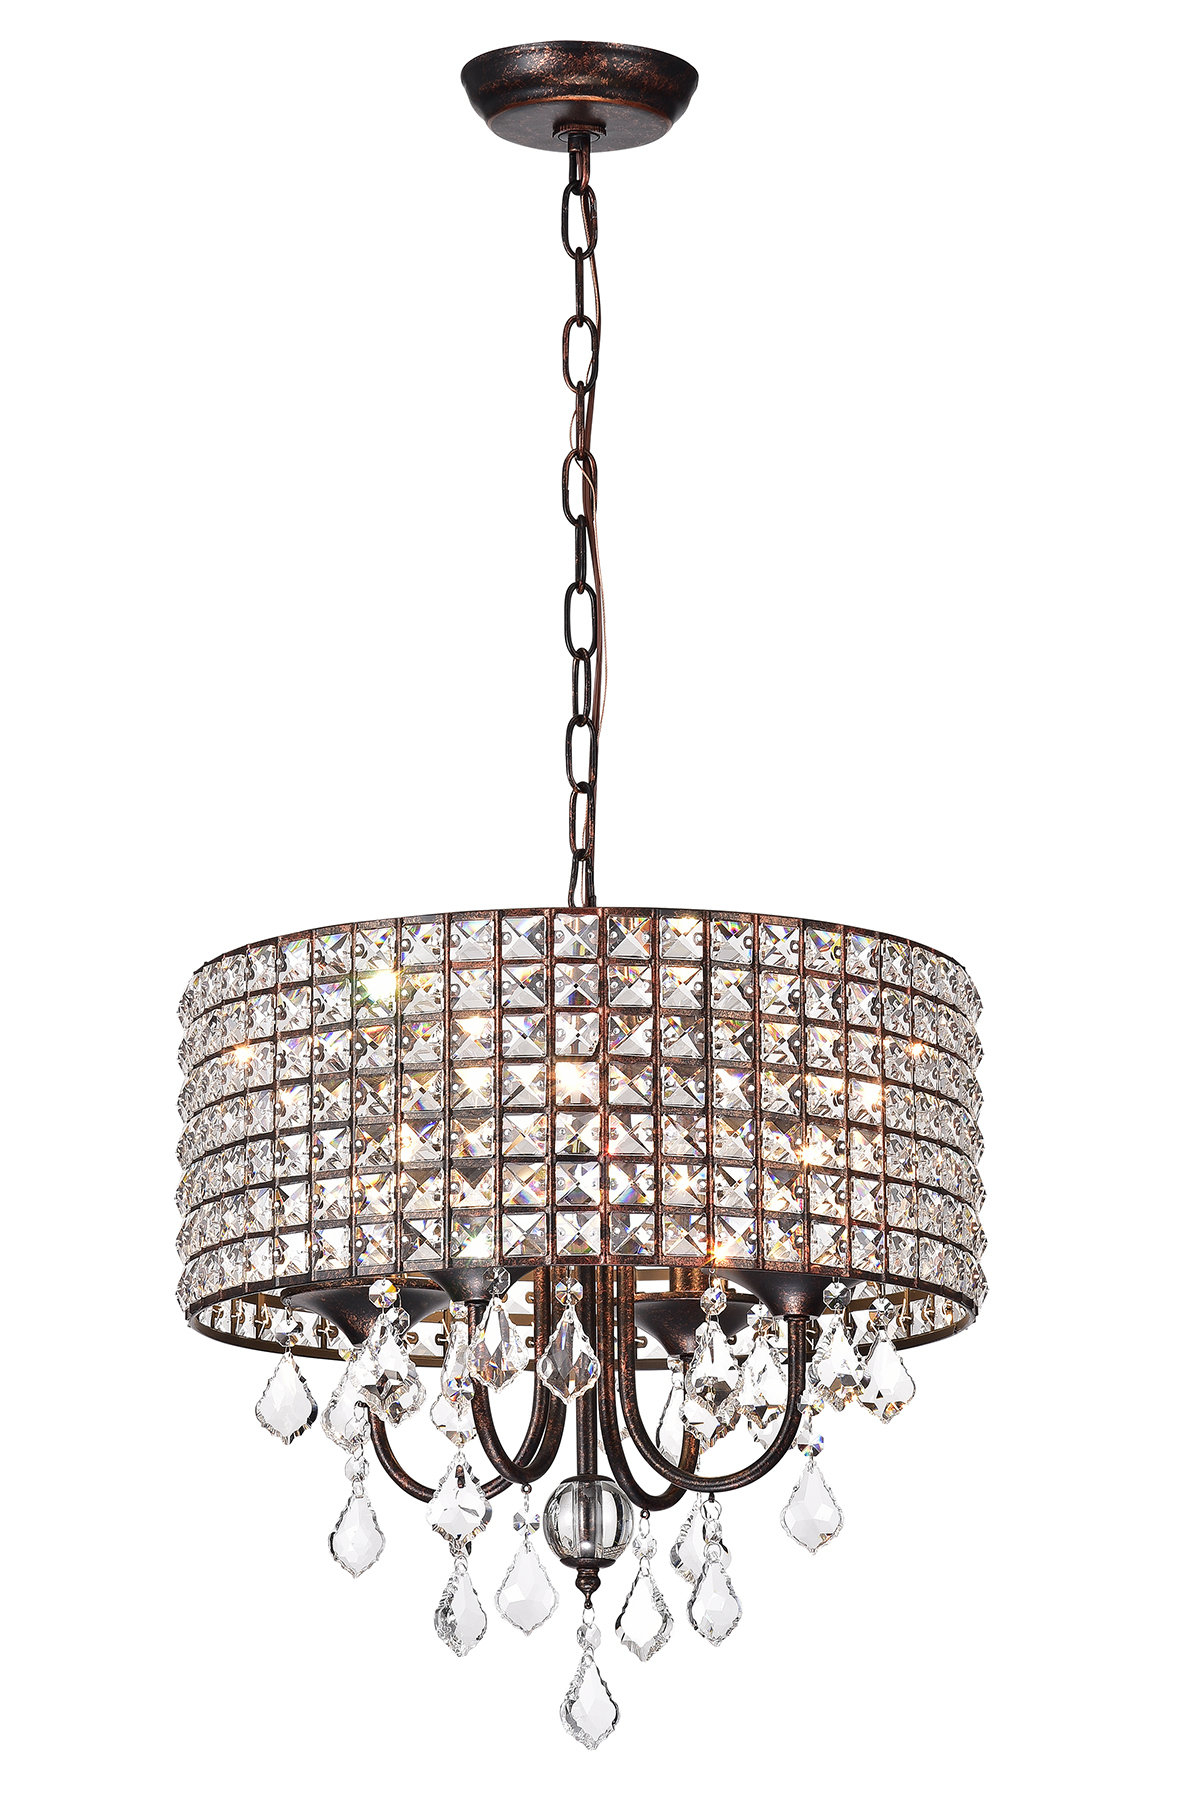 Gisselle 4 Light Drum Chandeliers For Most Popular Lavada 4 Light Drum Chandelier (View 3 of 25)